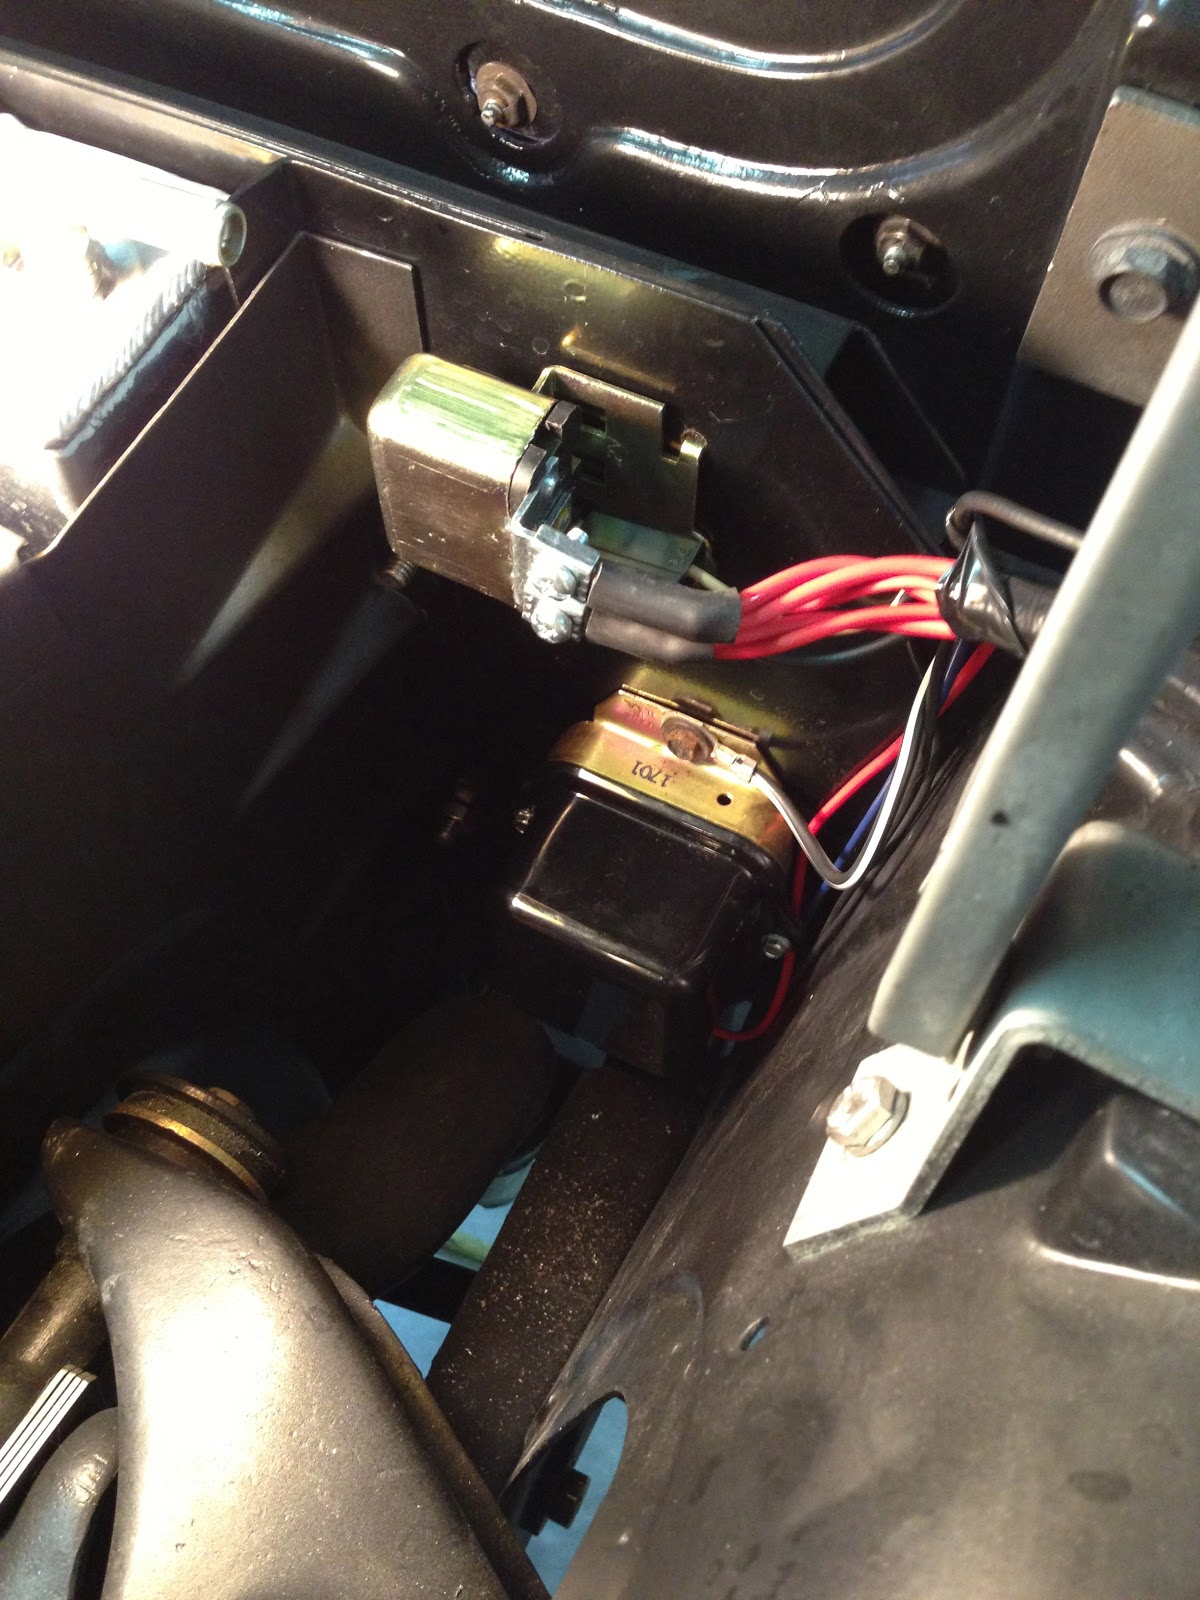 hight resolution of 1963 corvette sting ray split window coupe restoration on the key voltage regulator adjustment 63 corvette 63 corvette voltage regulator wiring diagram